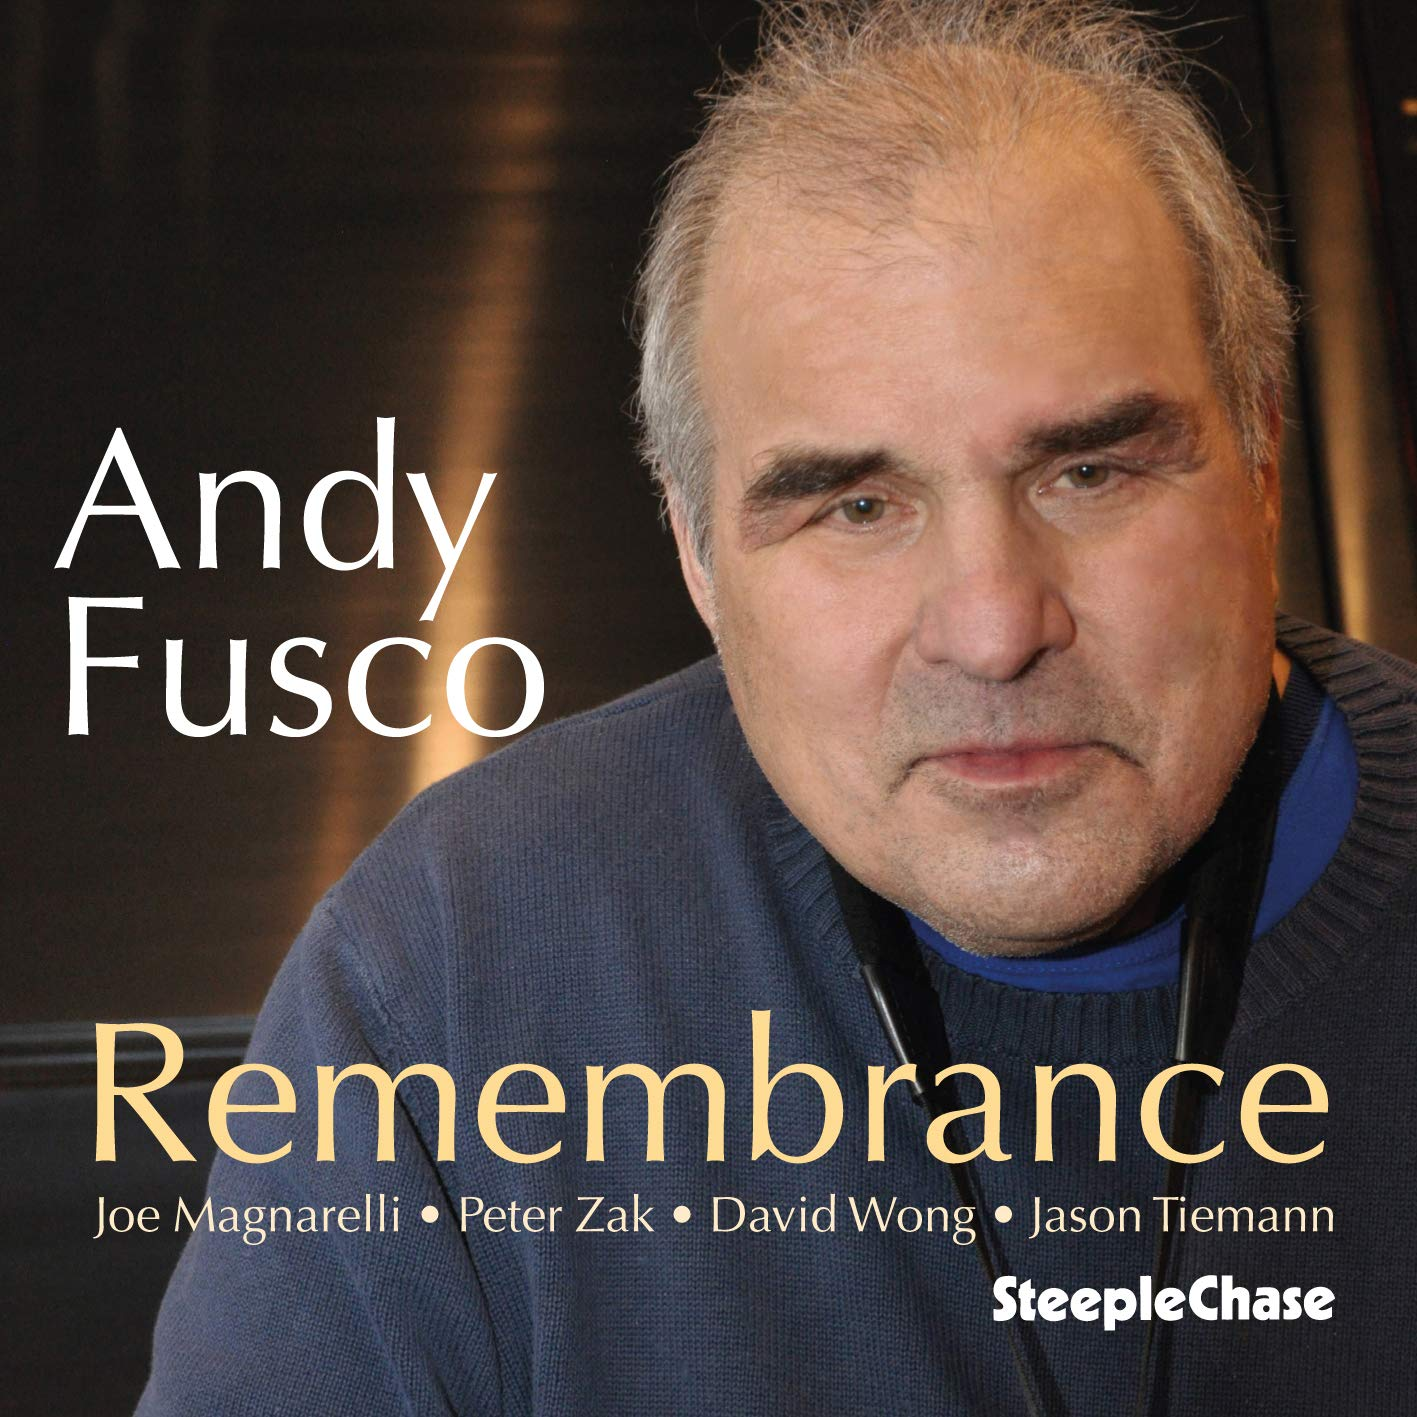 ANDY FUSCO - Remembrance cover